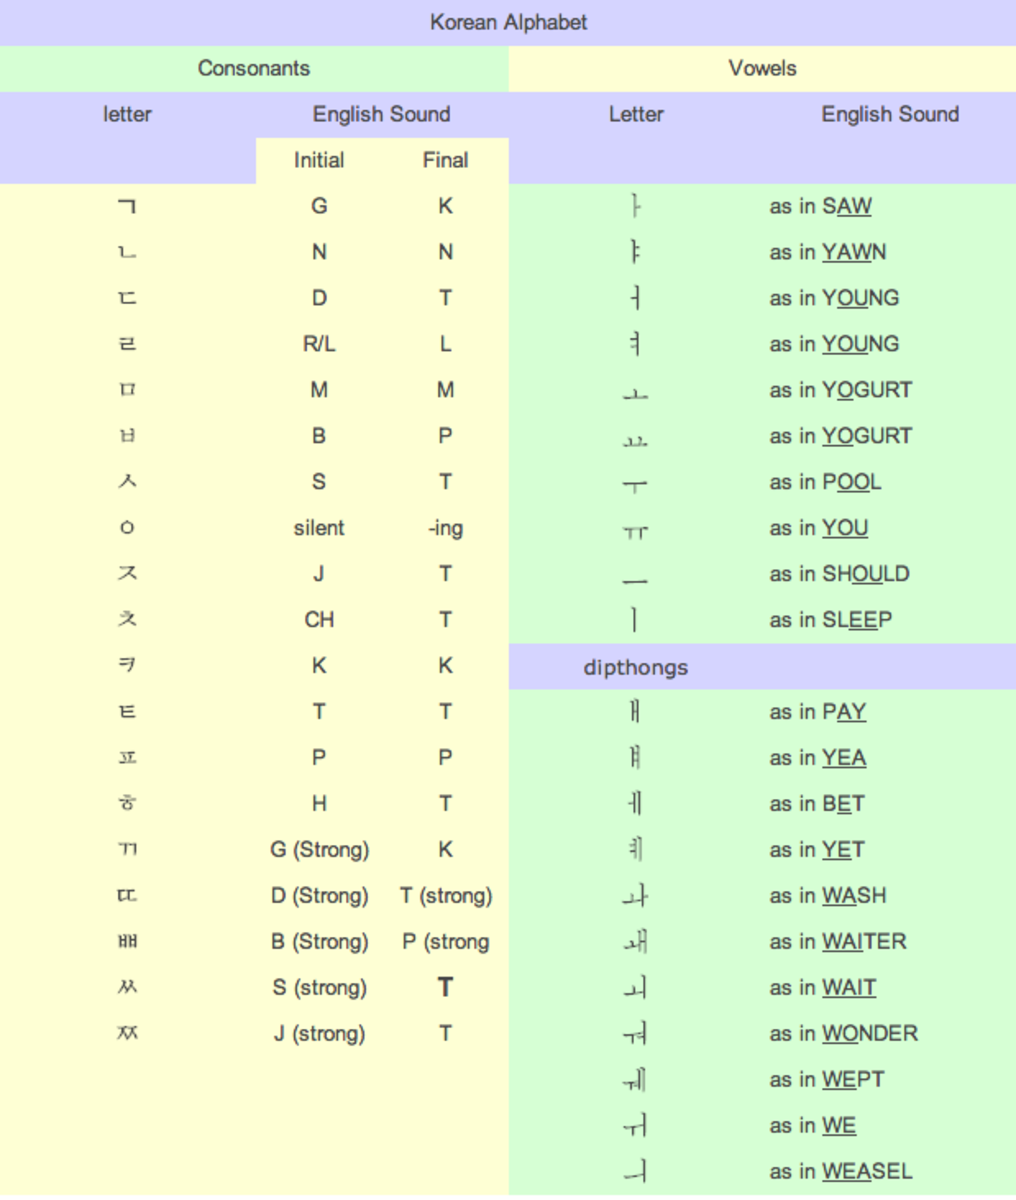 interactive-korean-alphabet-chart